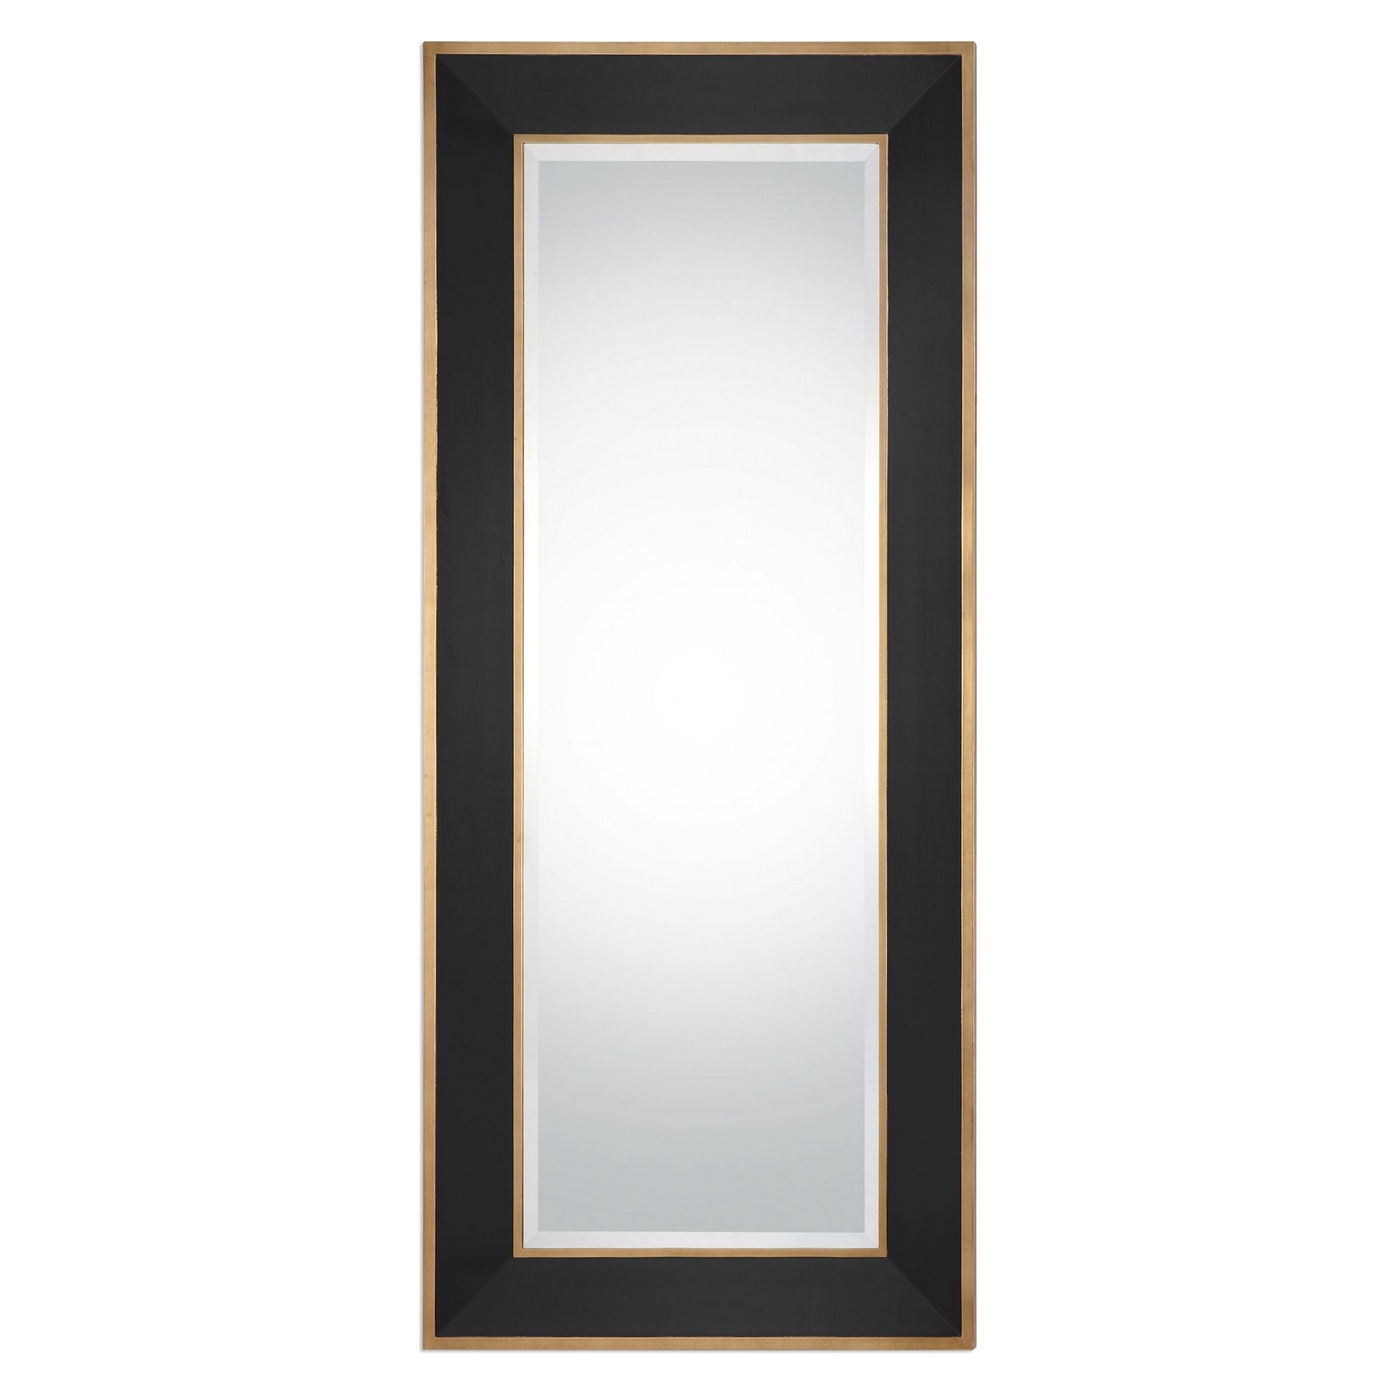 Cormor Beveled Mirror With Gloss Black Frame And Gold Trim